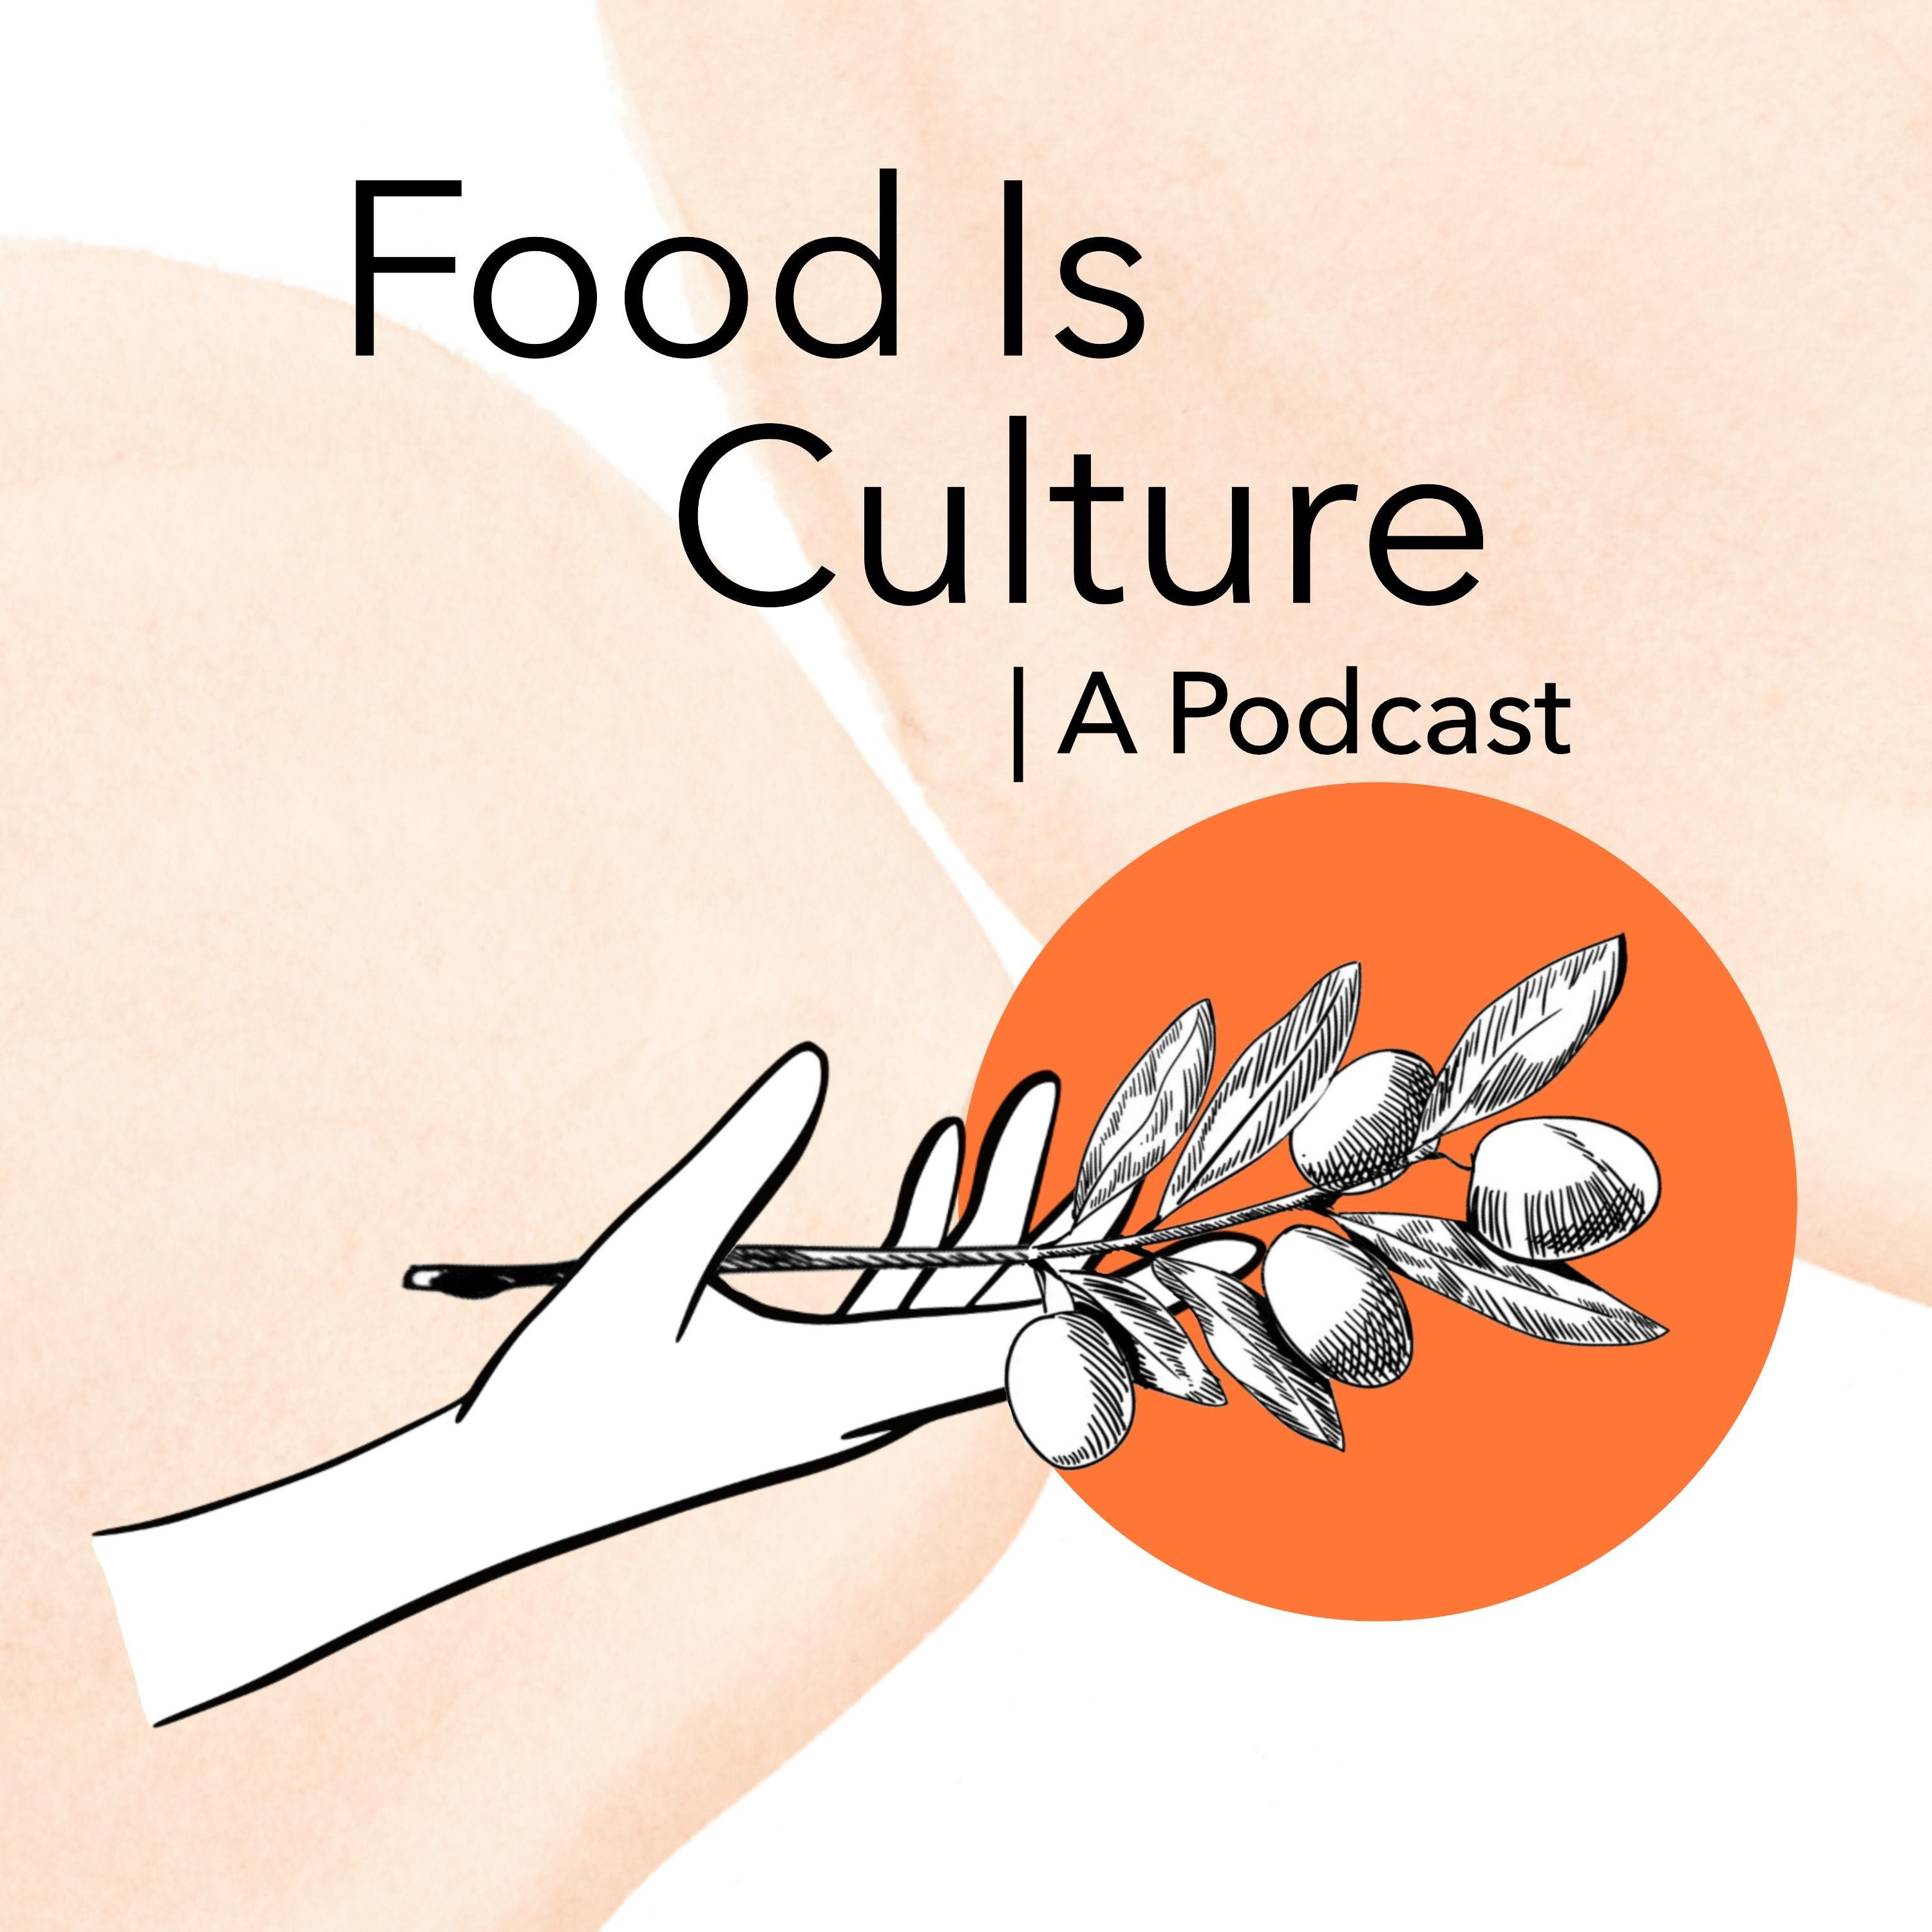 Food Is Culture | A Podcast